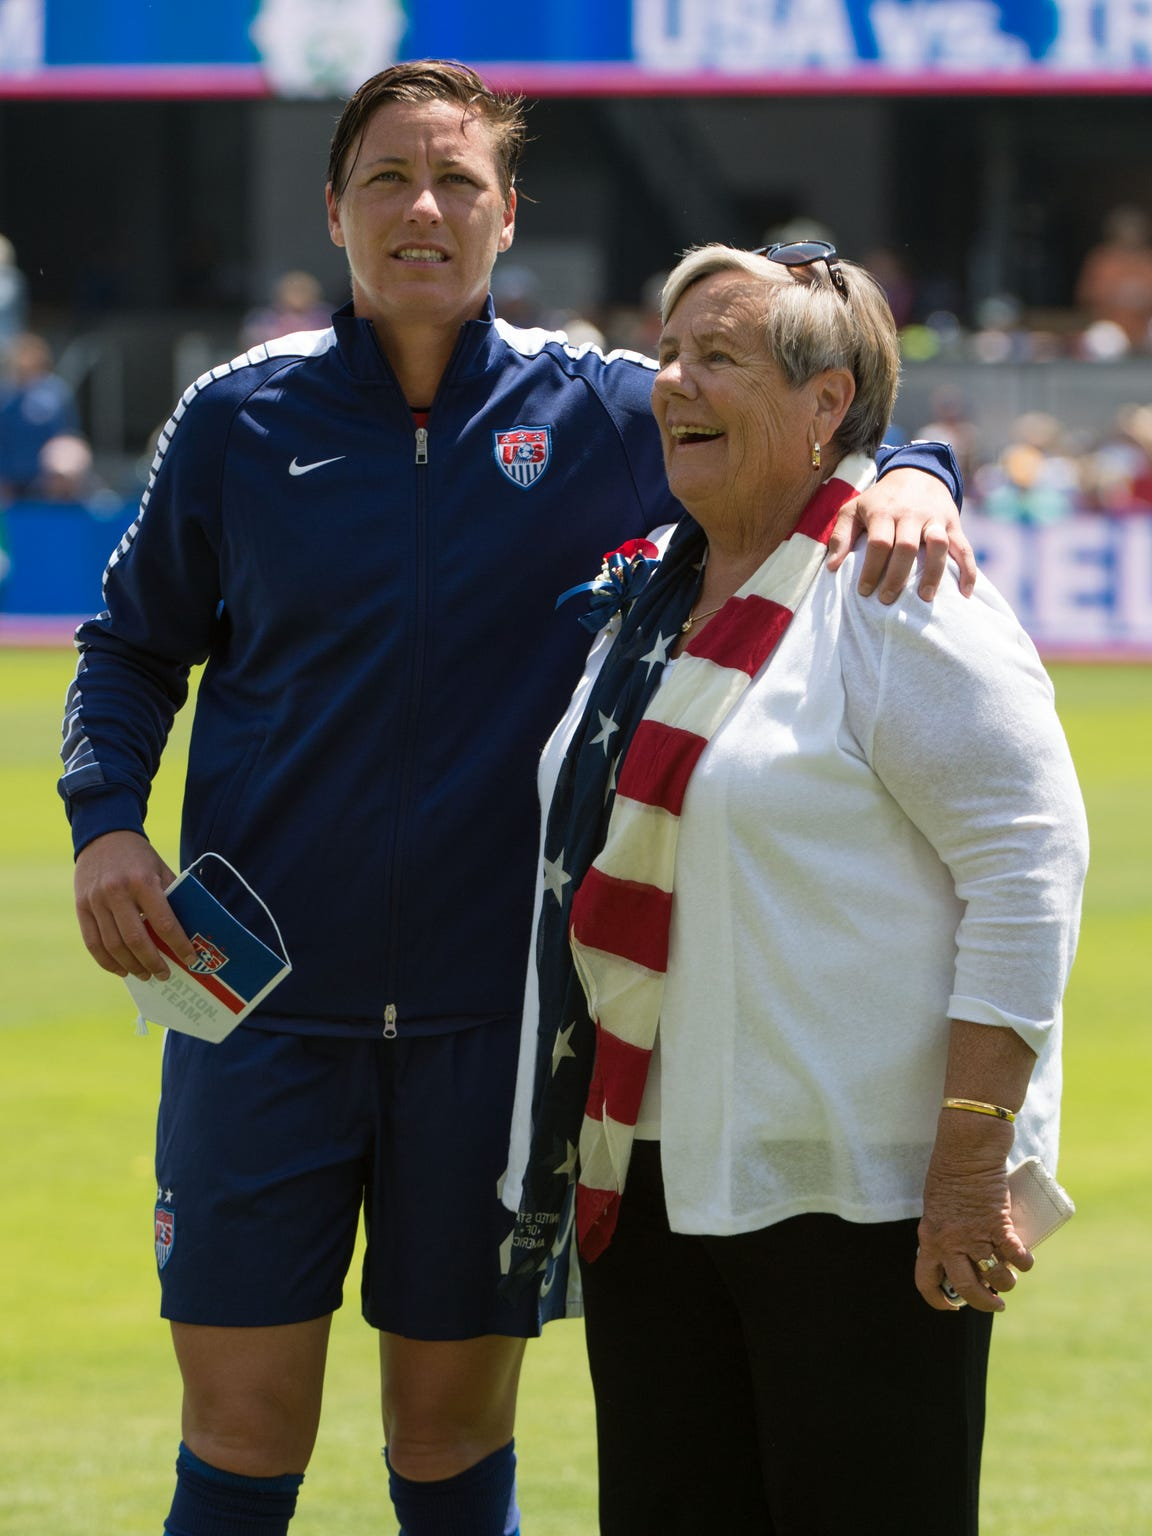 Abby Wambach is escorted onto the field by her mom Judy Wambach before a match against Ireland at Avaya Stadium on May 10.